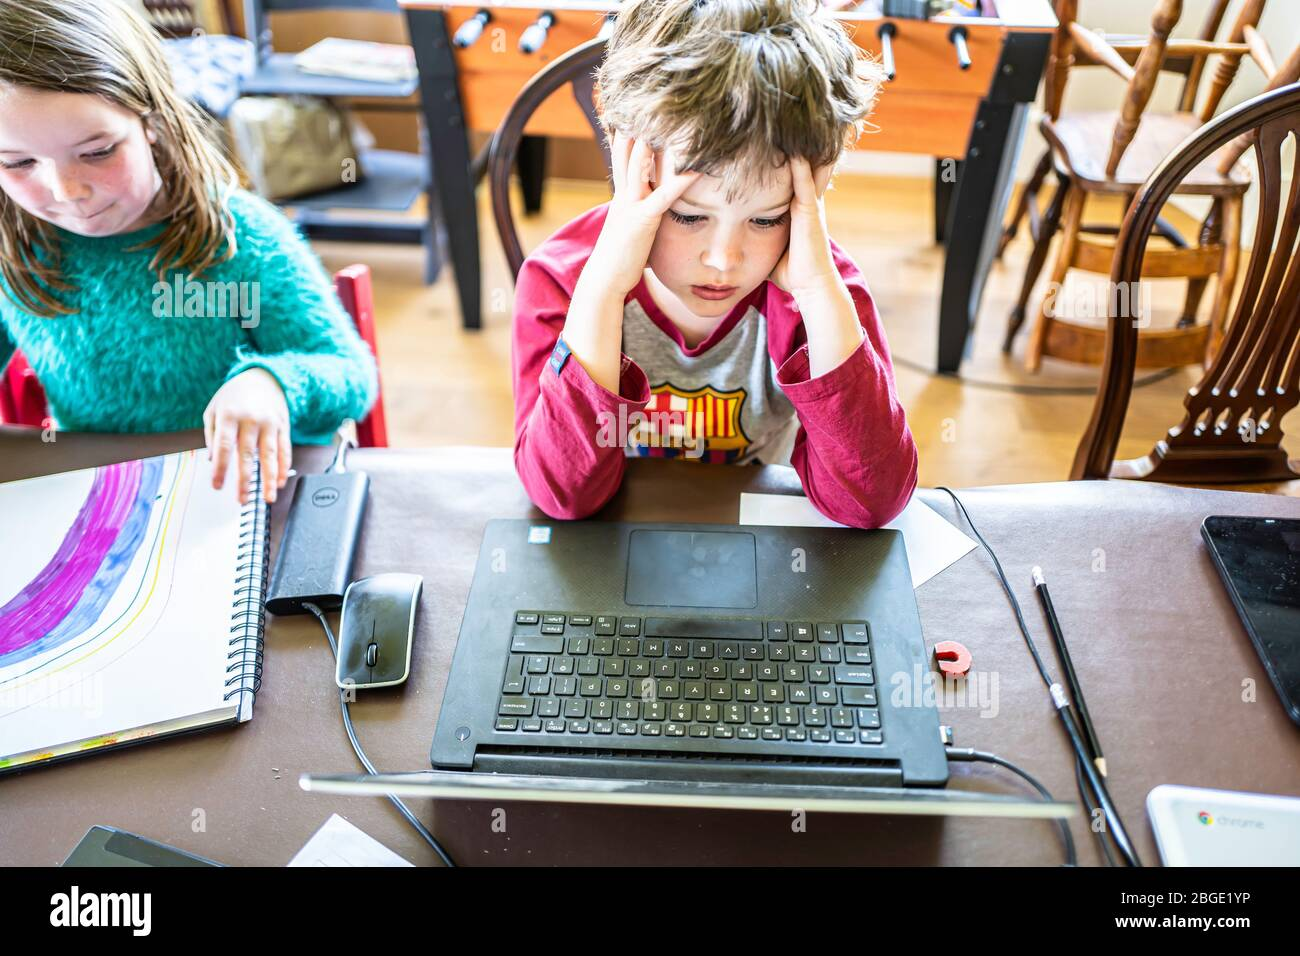 Camptown, Jedburgh, Scottish Borders, UK. 15th April 2020. Max and Lizzie Scott, 9 and 7, are being taught online by their school St. Mary's of Melros Stock Photo